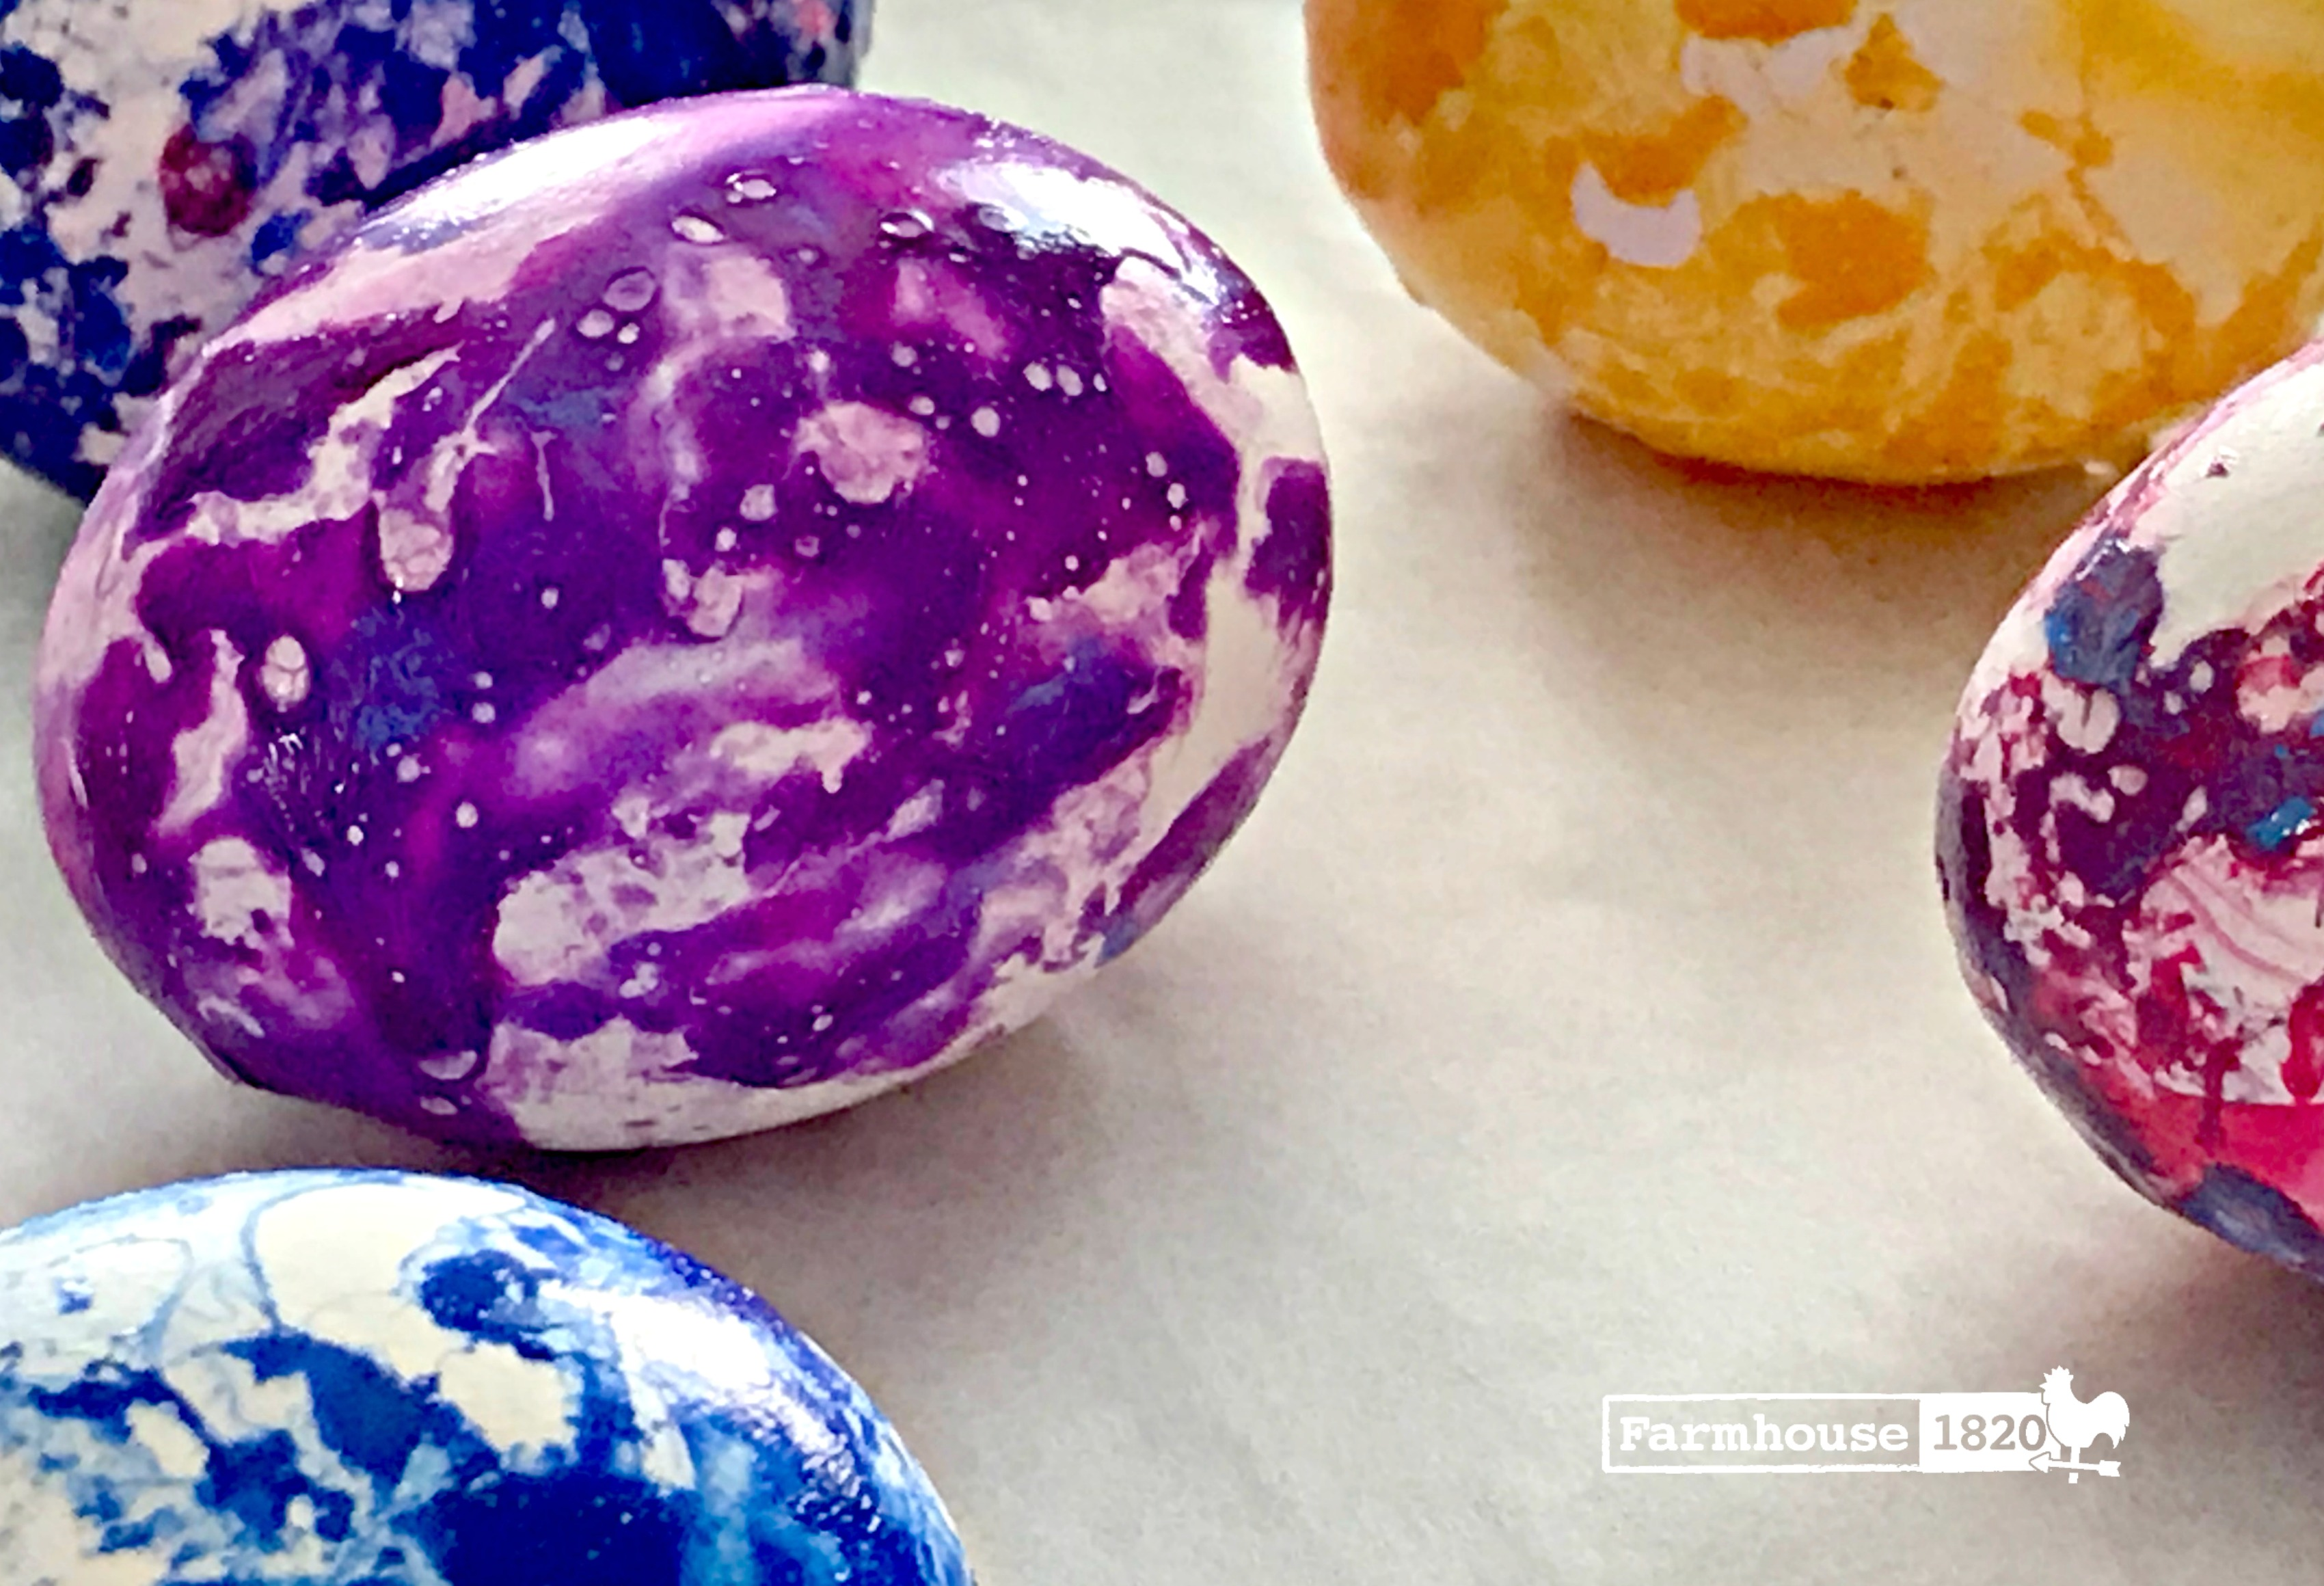 eggs - marbleized, place on parchment paper to dry